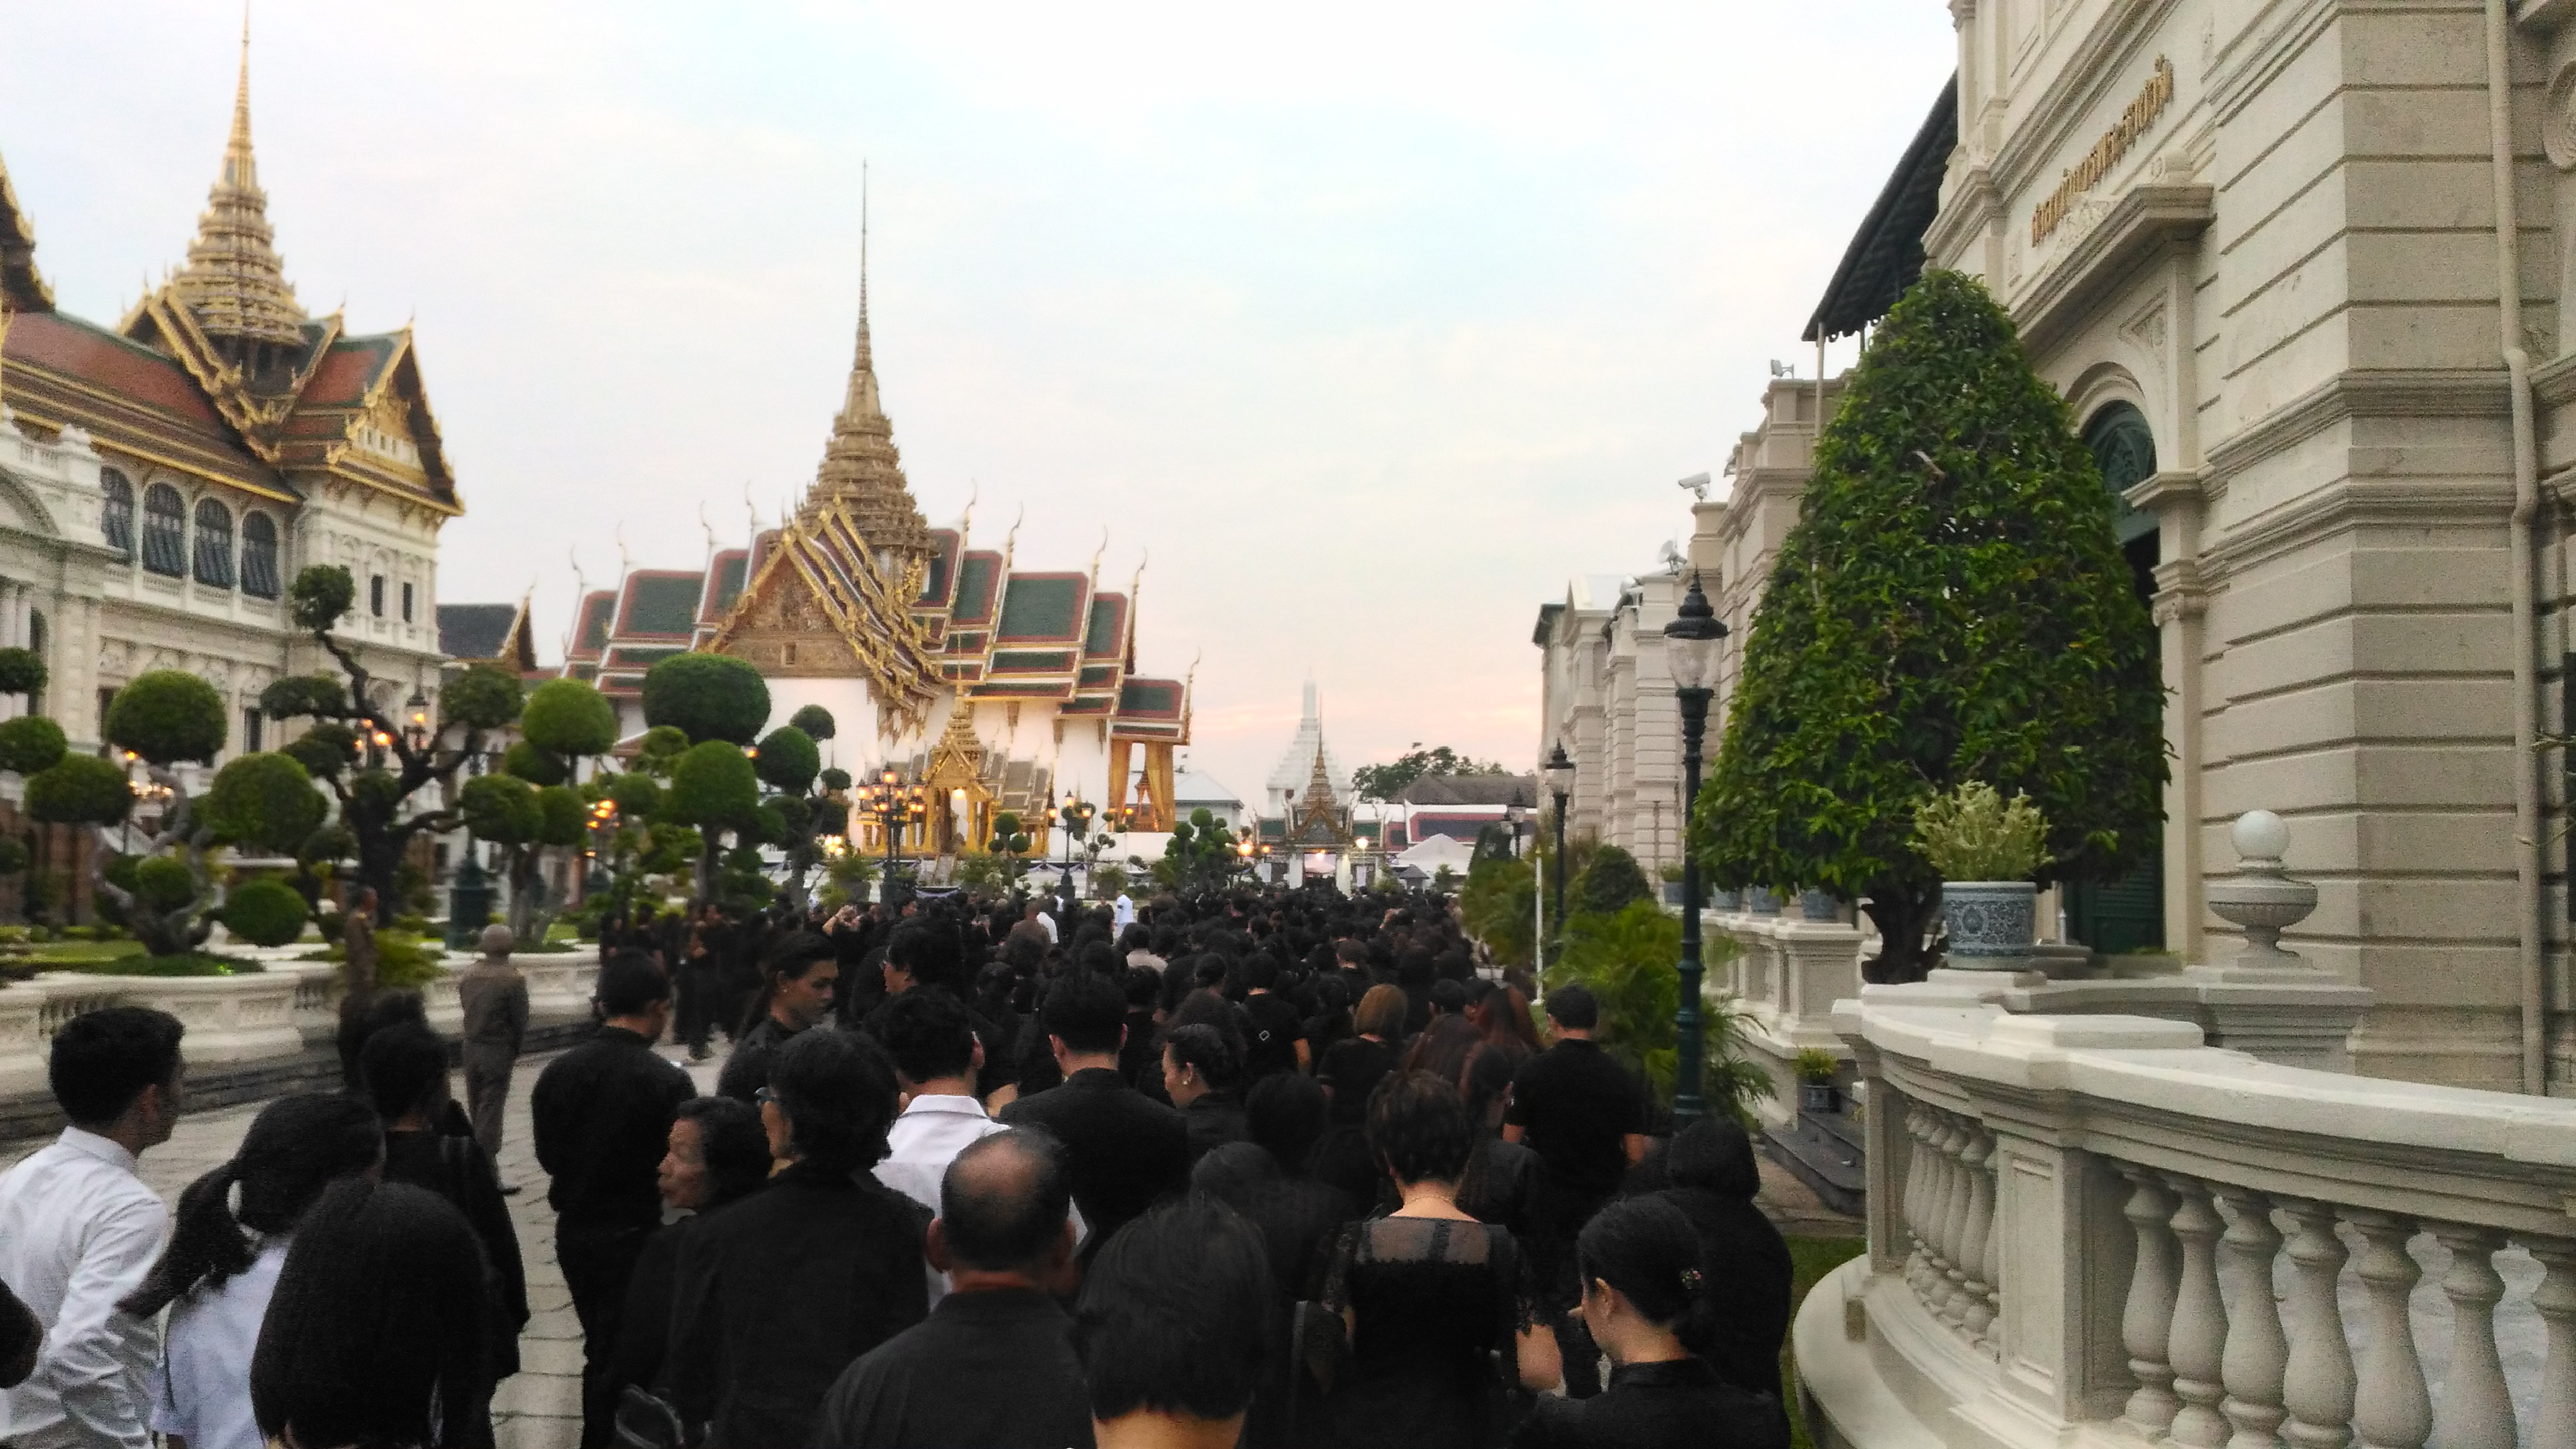 Queue at the Grand Palace in Bangkok to pay respects to His Majesty the late King Bhumibol Adulyadej. Photo taken on January 23, 2017